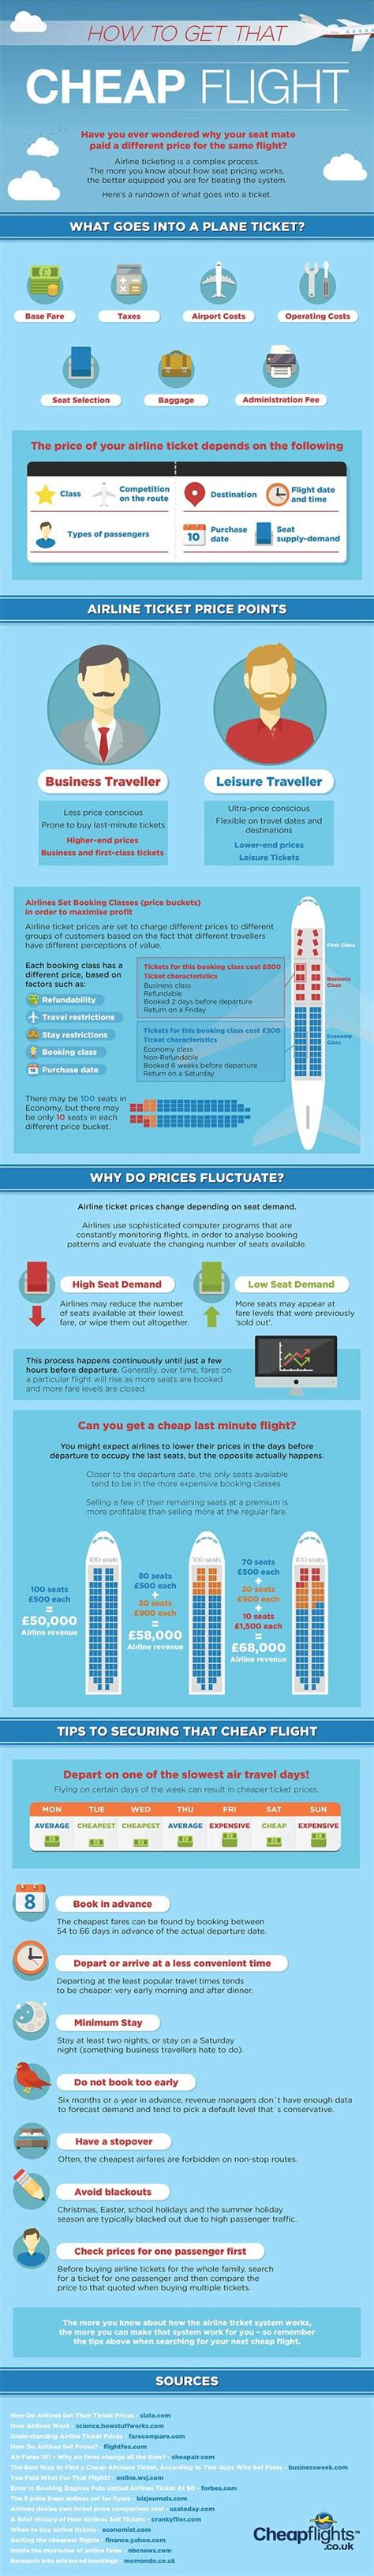 cheap flights how to get and infographic on